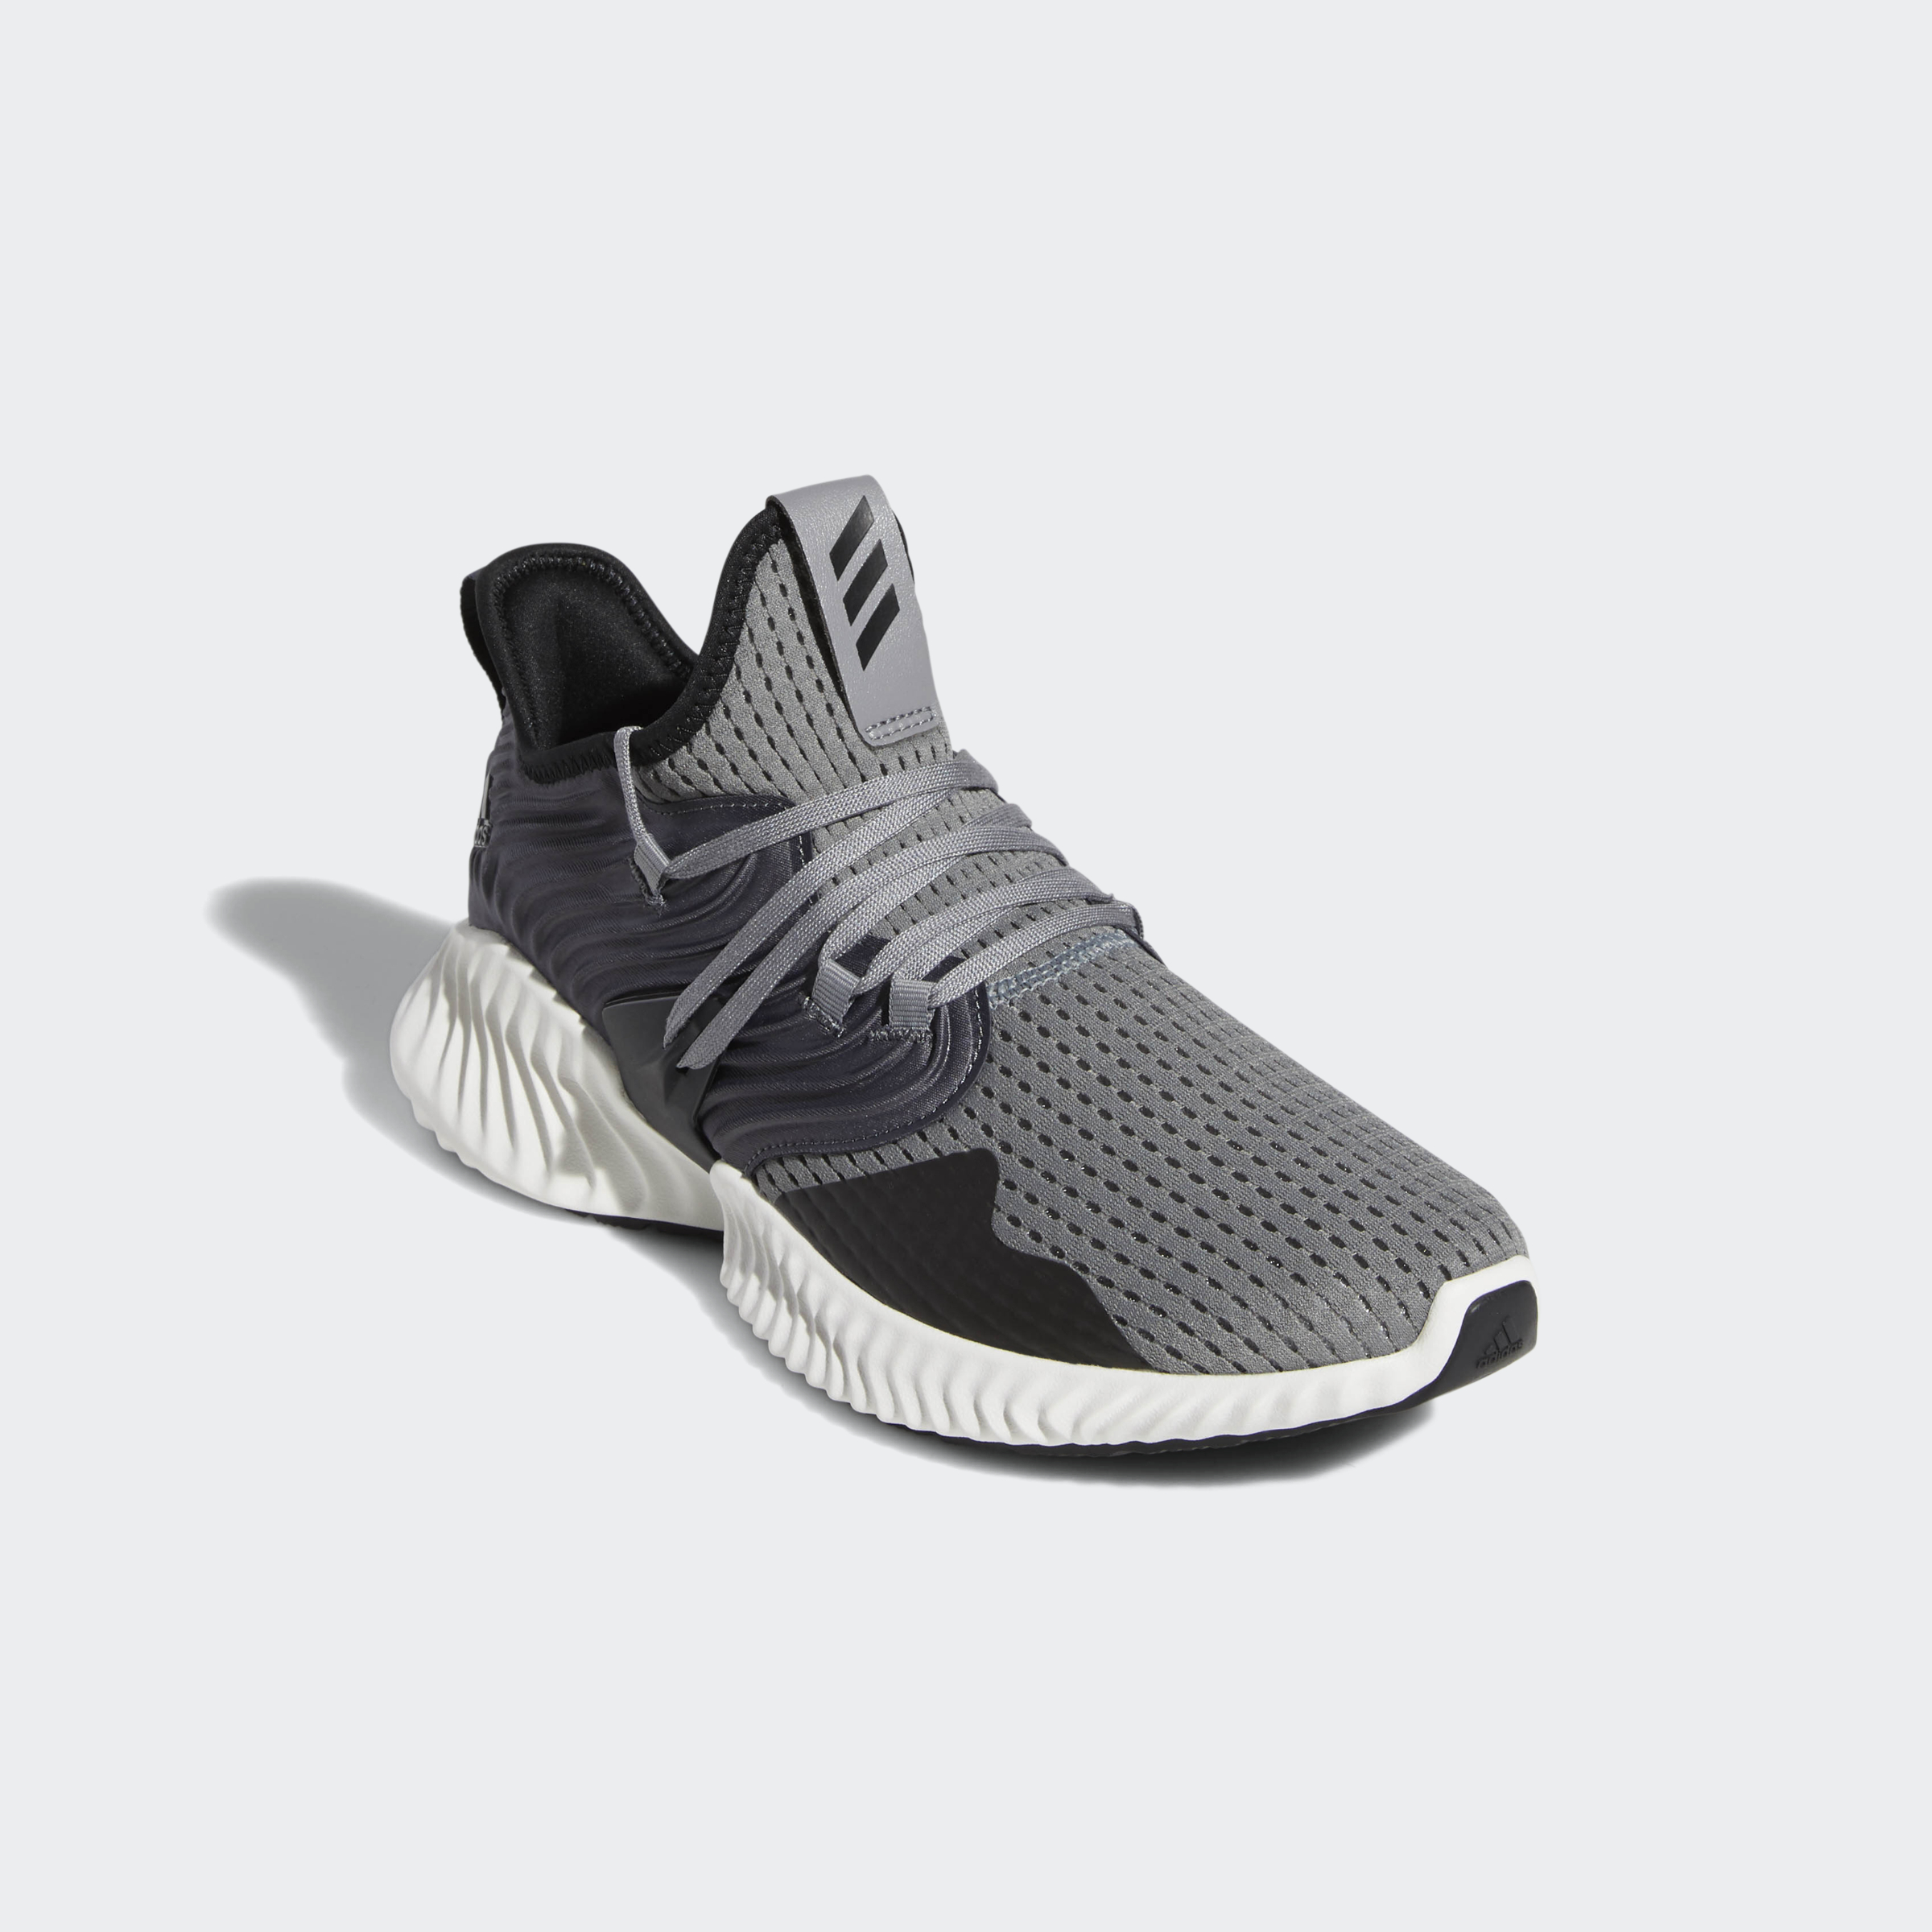 adidas-Alphabounce-Instinct-Clima-Shoes-Men-039-s-Athletic-amp-Sneakers miniature 18